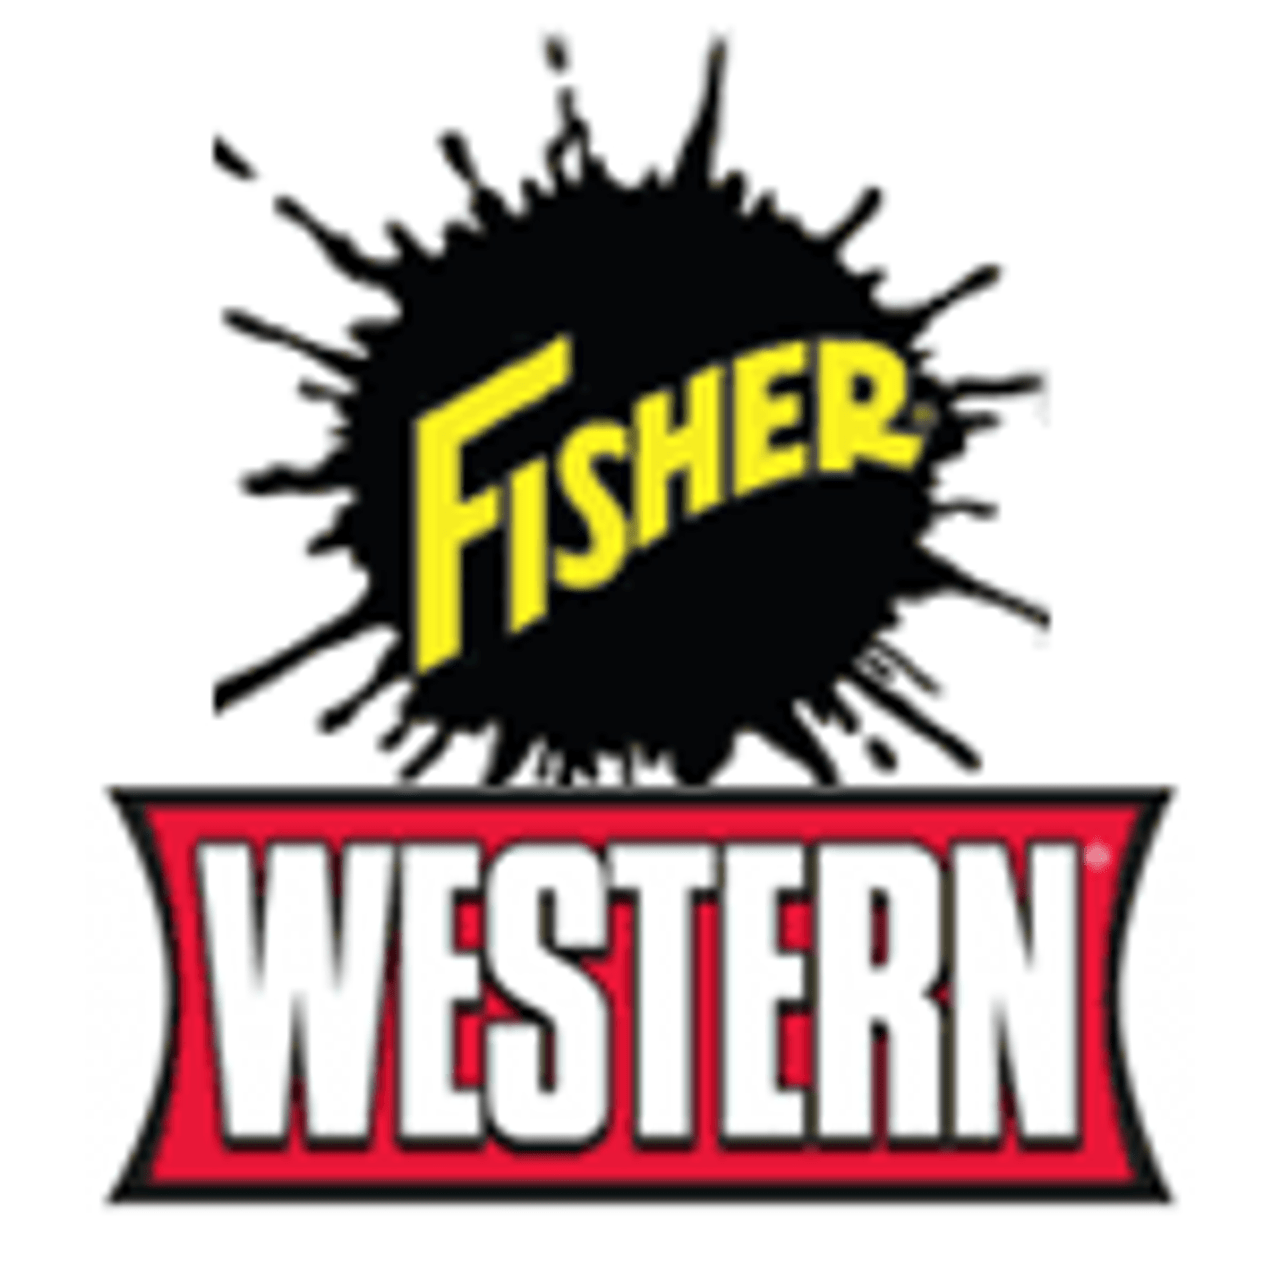 """56599 - """"FISHER-WESTERN HOSE 1/4 X 36 W/FJIC ENDS (56831)"""